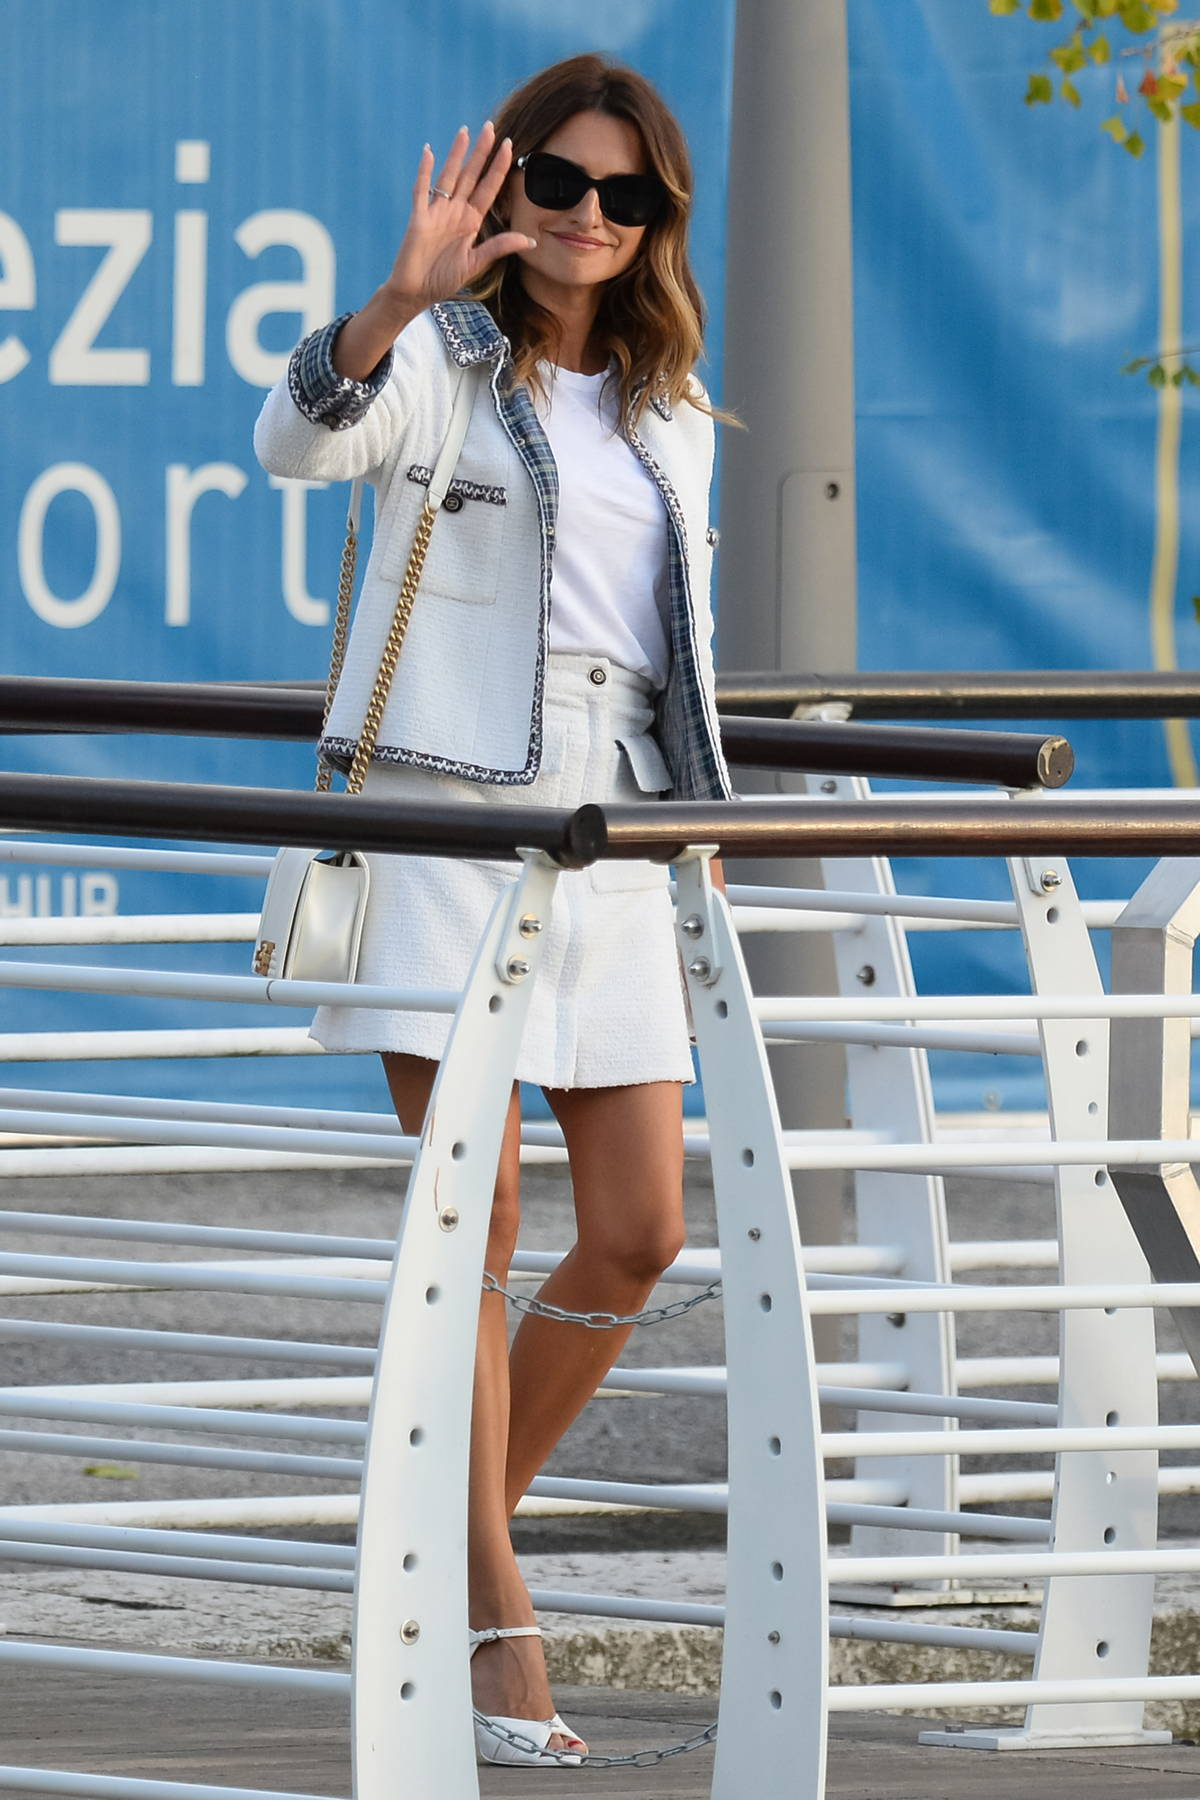 Penelope Cruz looks chic in all-white ensemble as she touches down in Venice, Italy